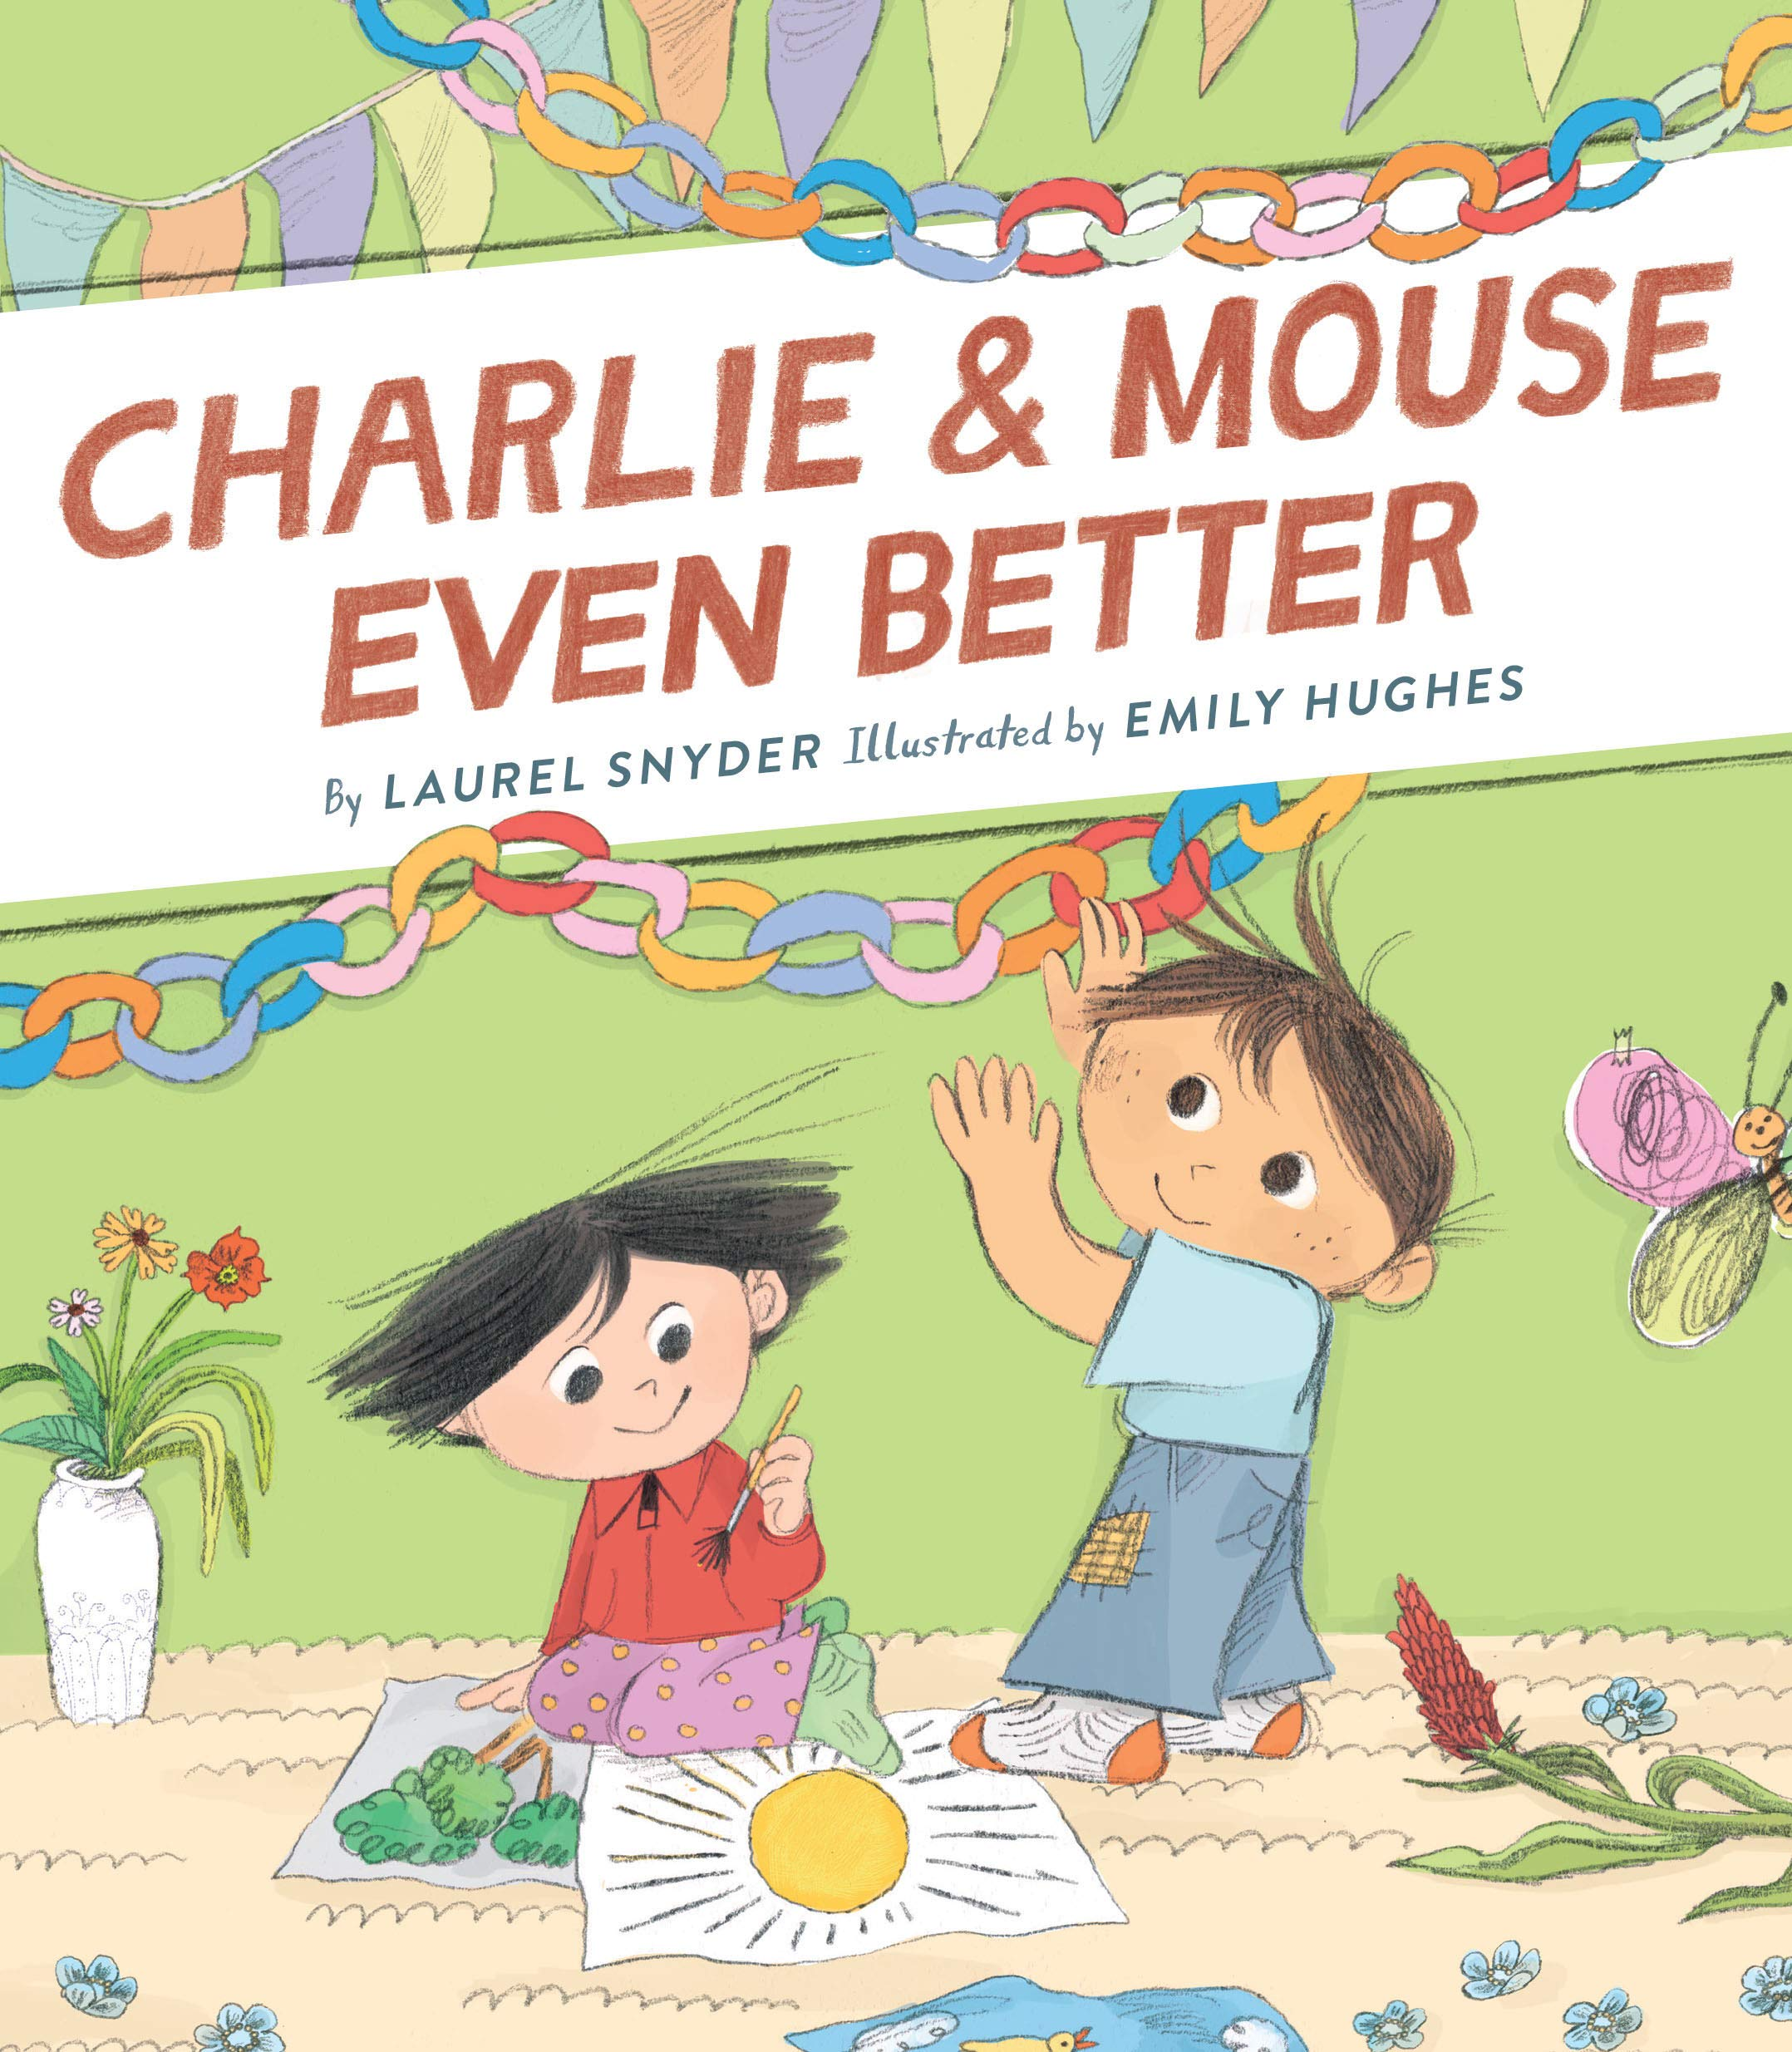 Two young boys decorate for a birthday party on the cover of this early reader, one hanging colorful paper chains and the other drawing a picture of a sun.